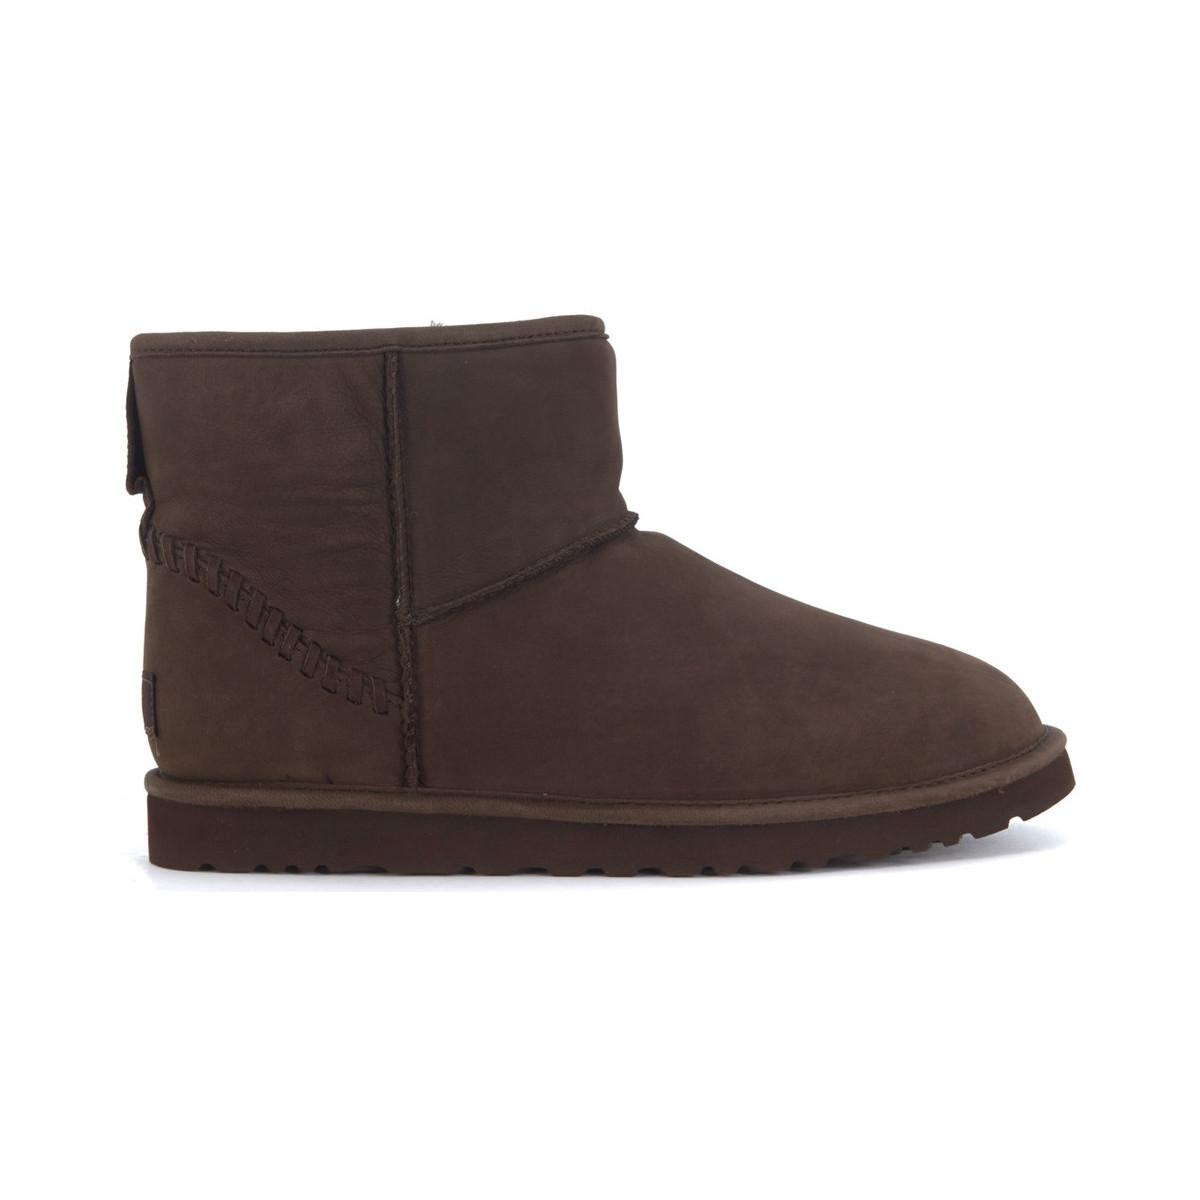 03442a2dda8 UGG Classic Mini Deco Goat Ankle Boots In Chicolate Brown Leathe ...